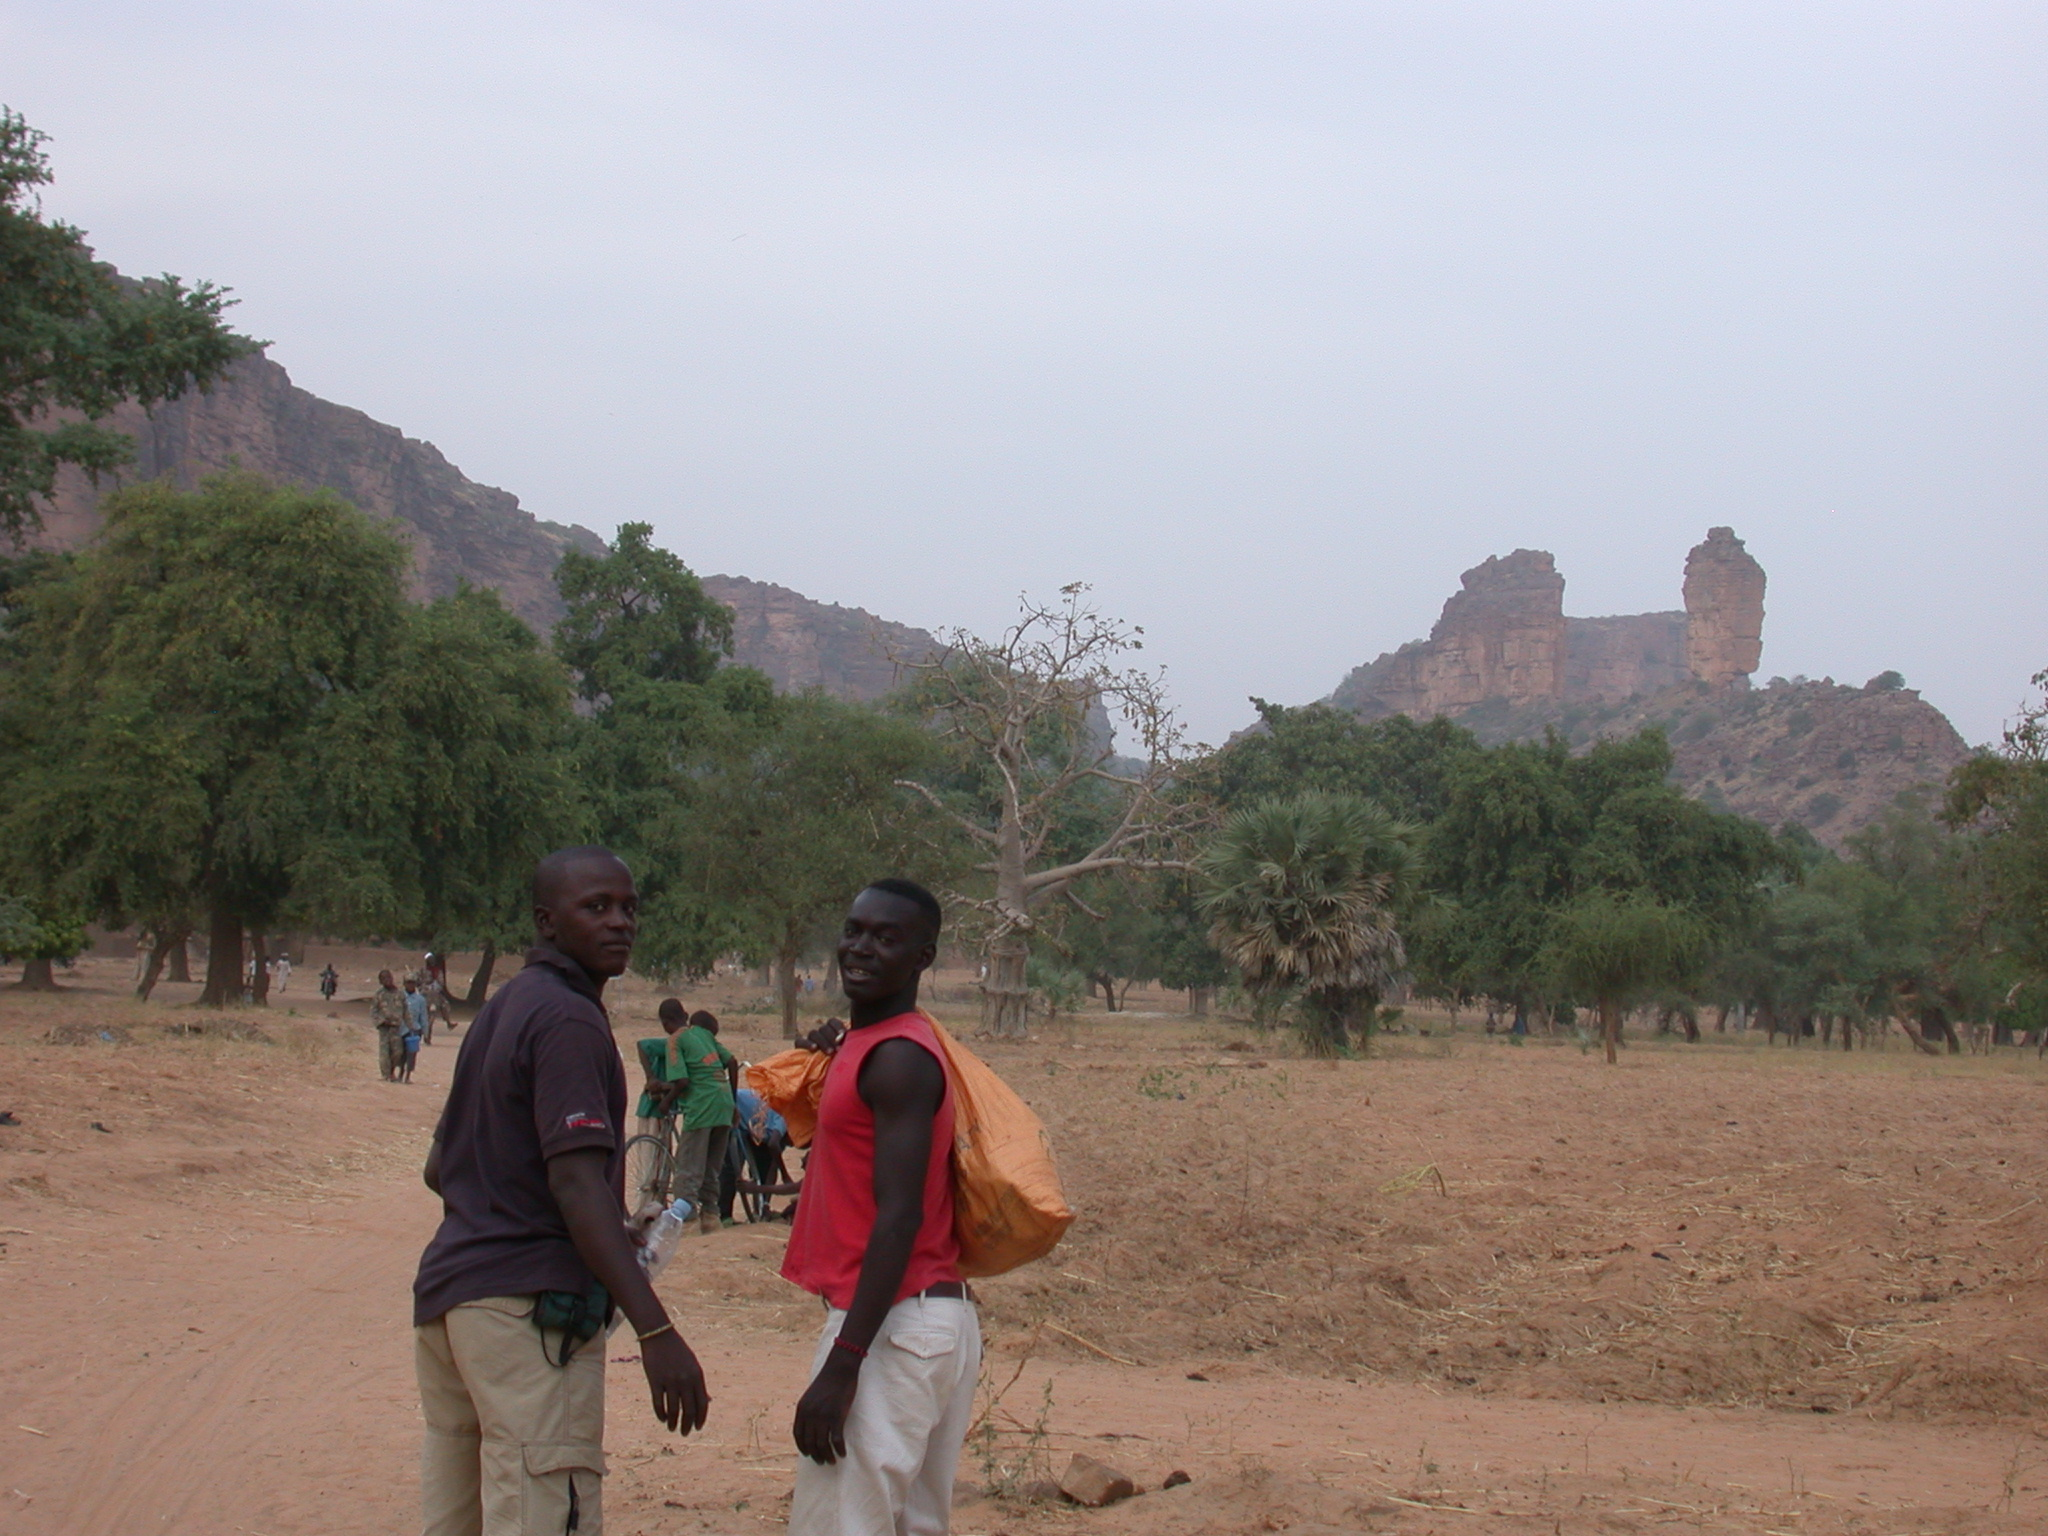 Guide and Friend on Path From Tellem Village to Ennde Village, Dogon Country, Mali